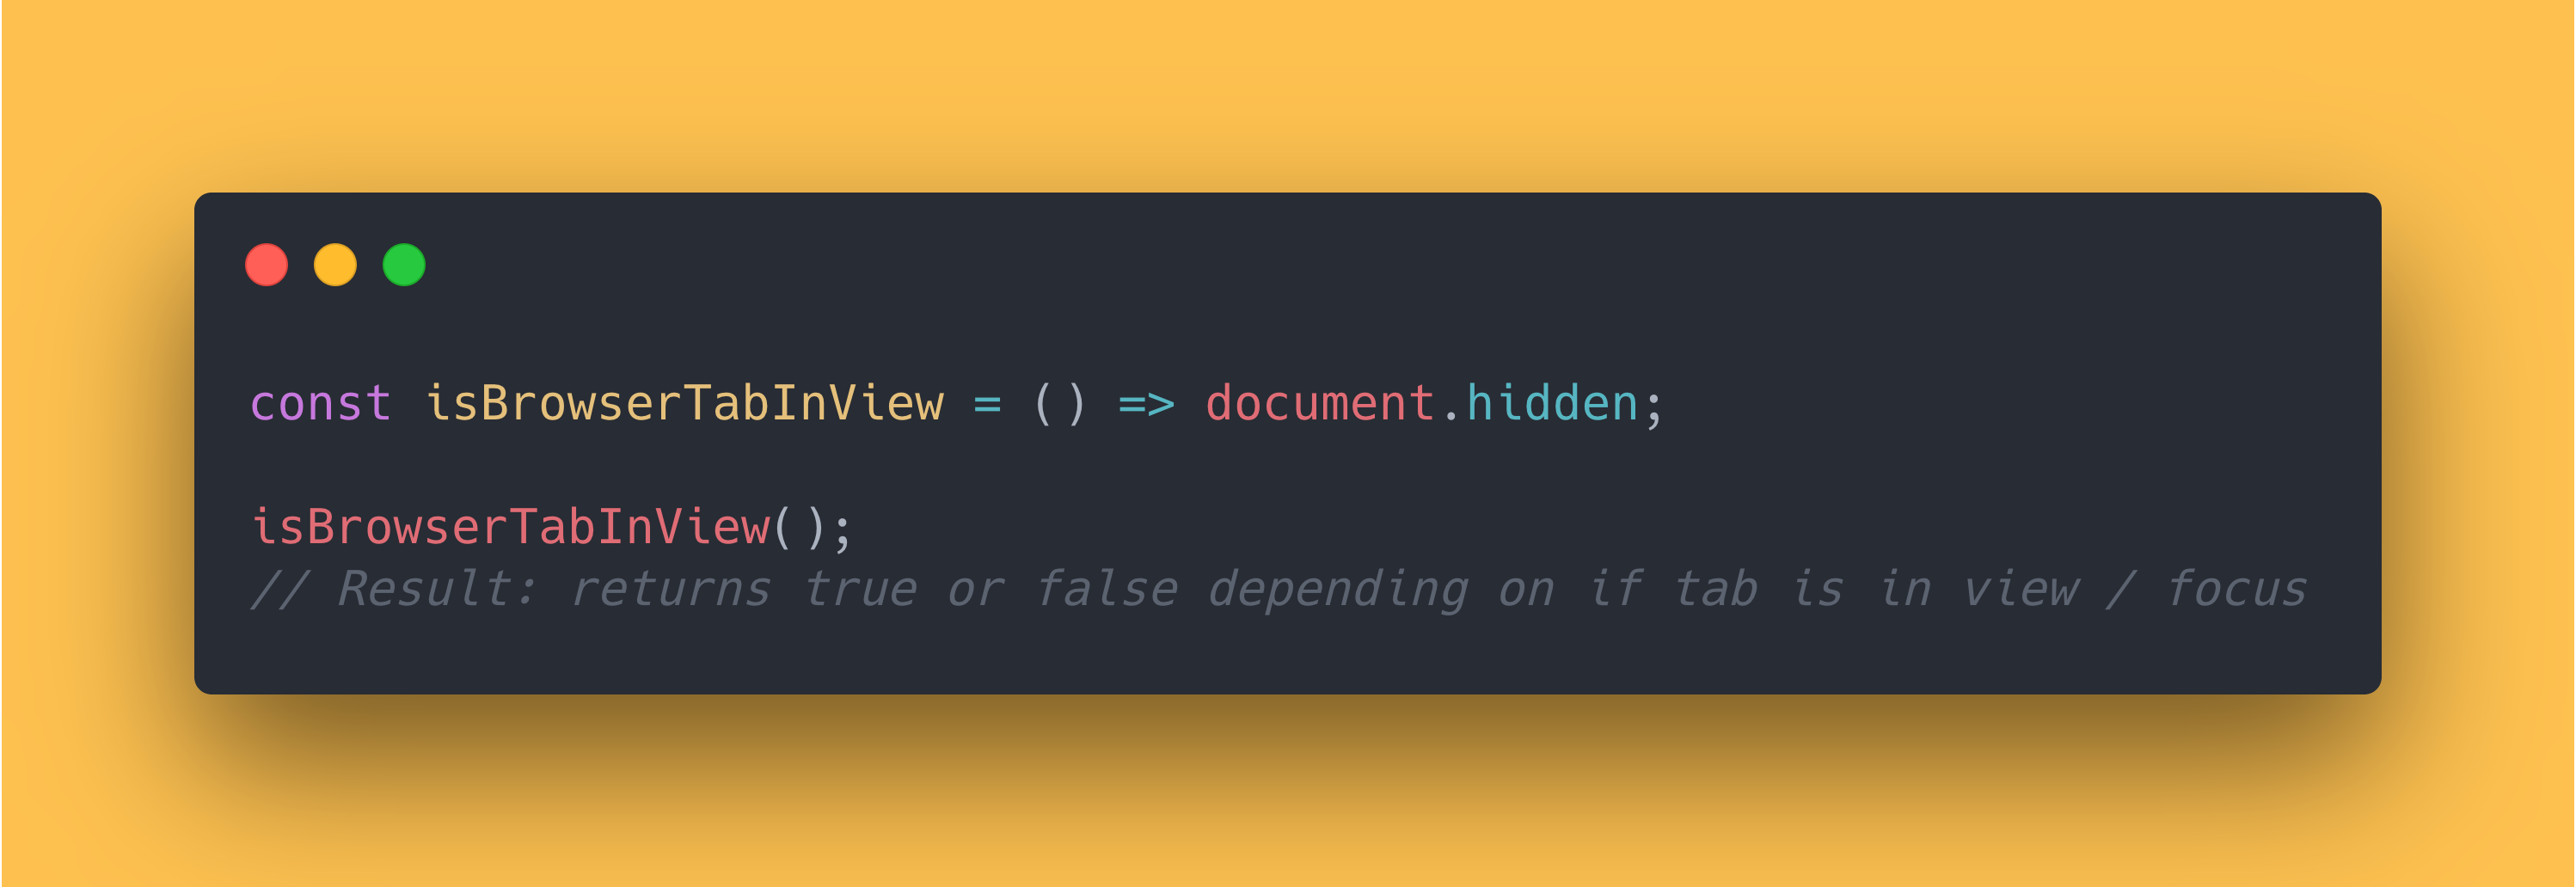 JS code block showing how to use the document hidden property to get if the current tab is in view or focus.